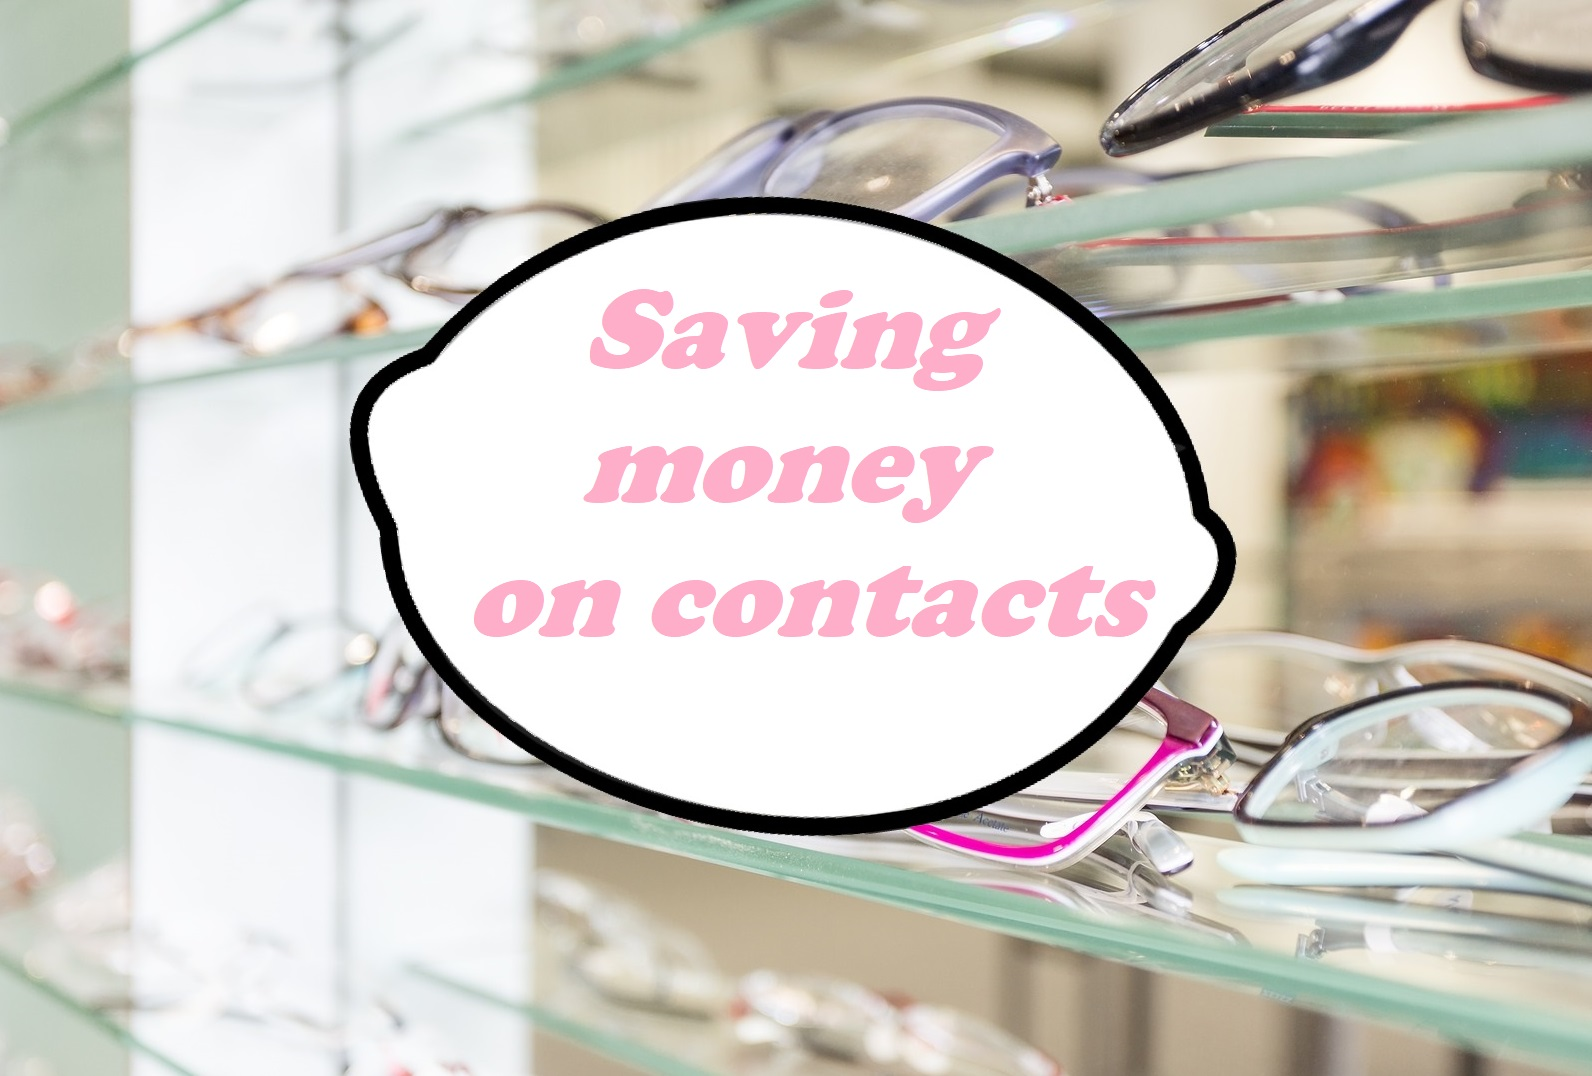 How to save money on contact lenses